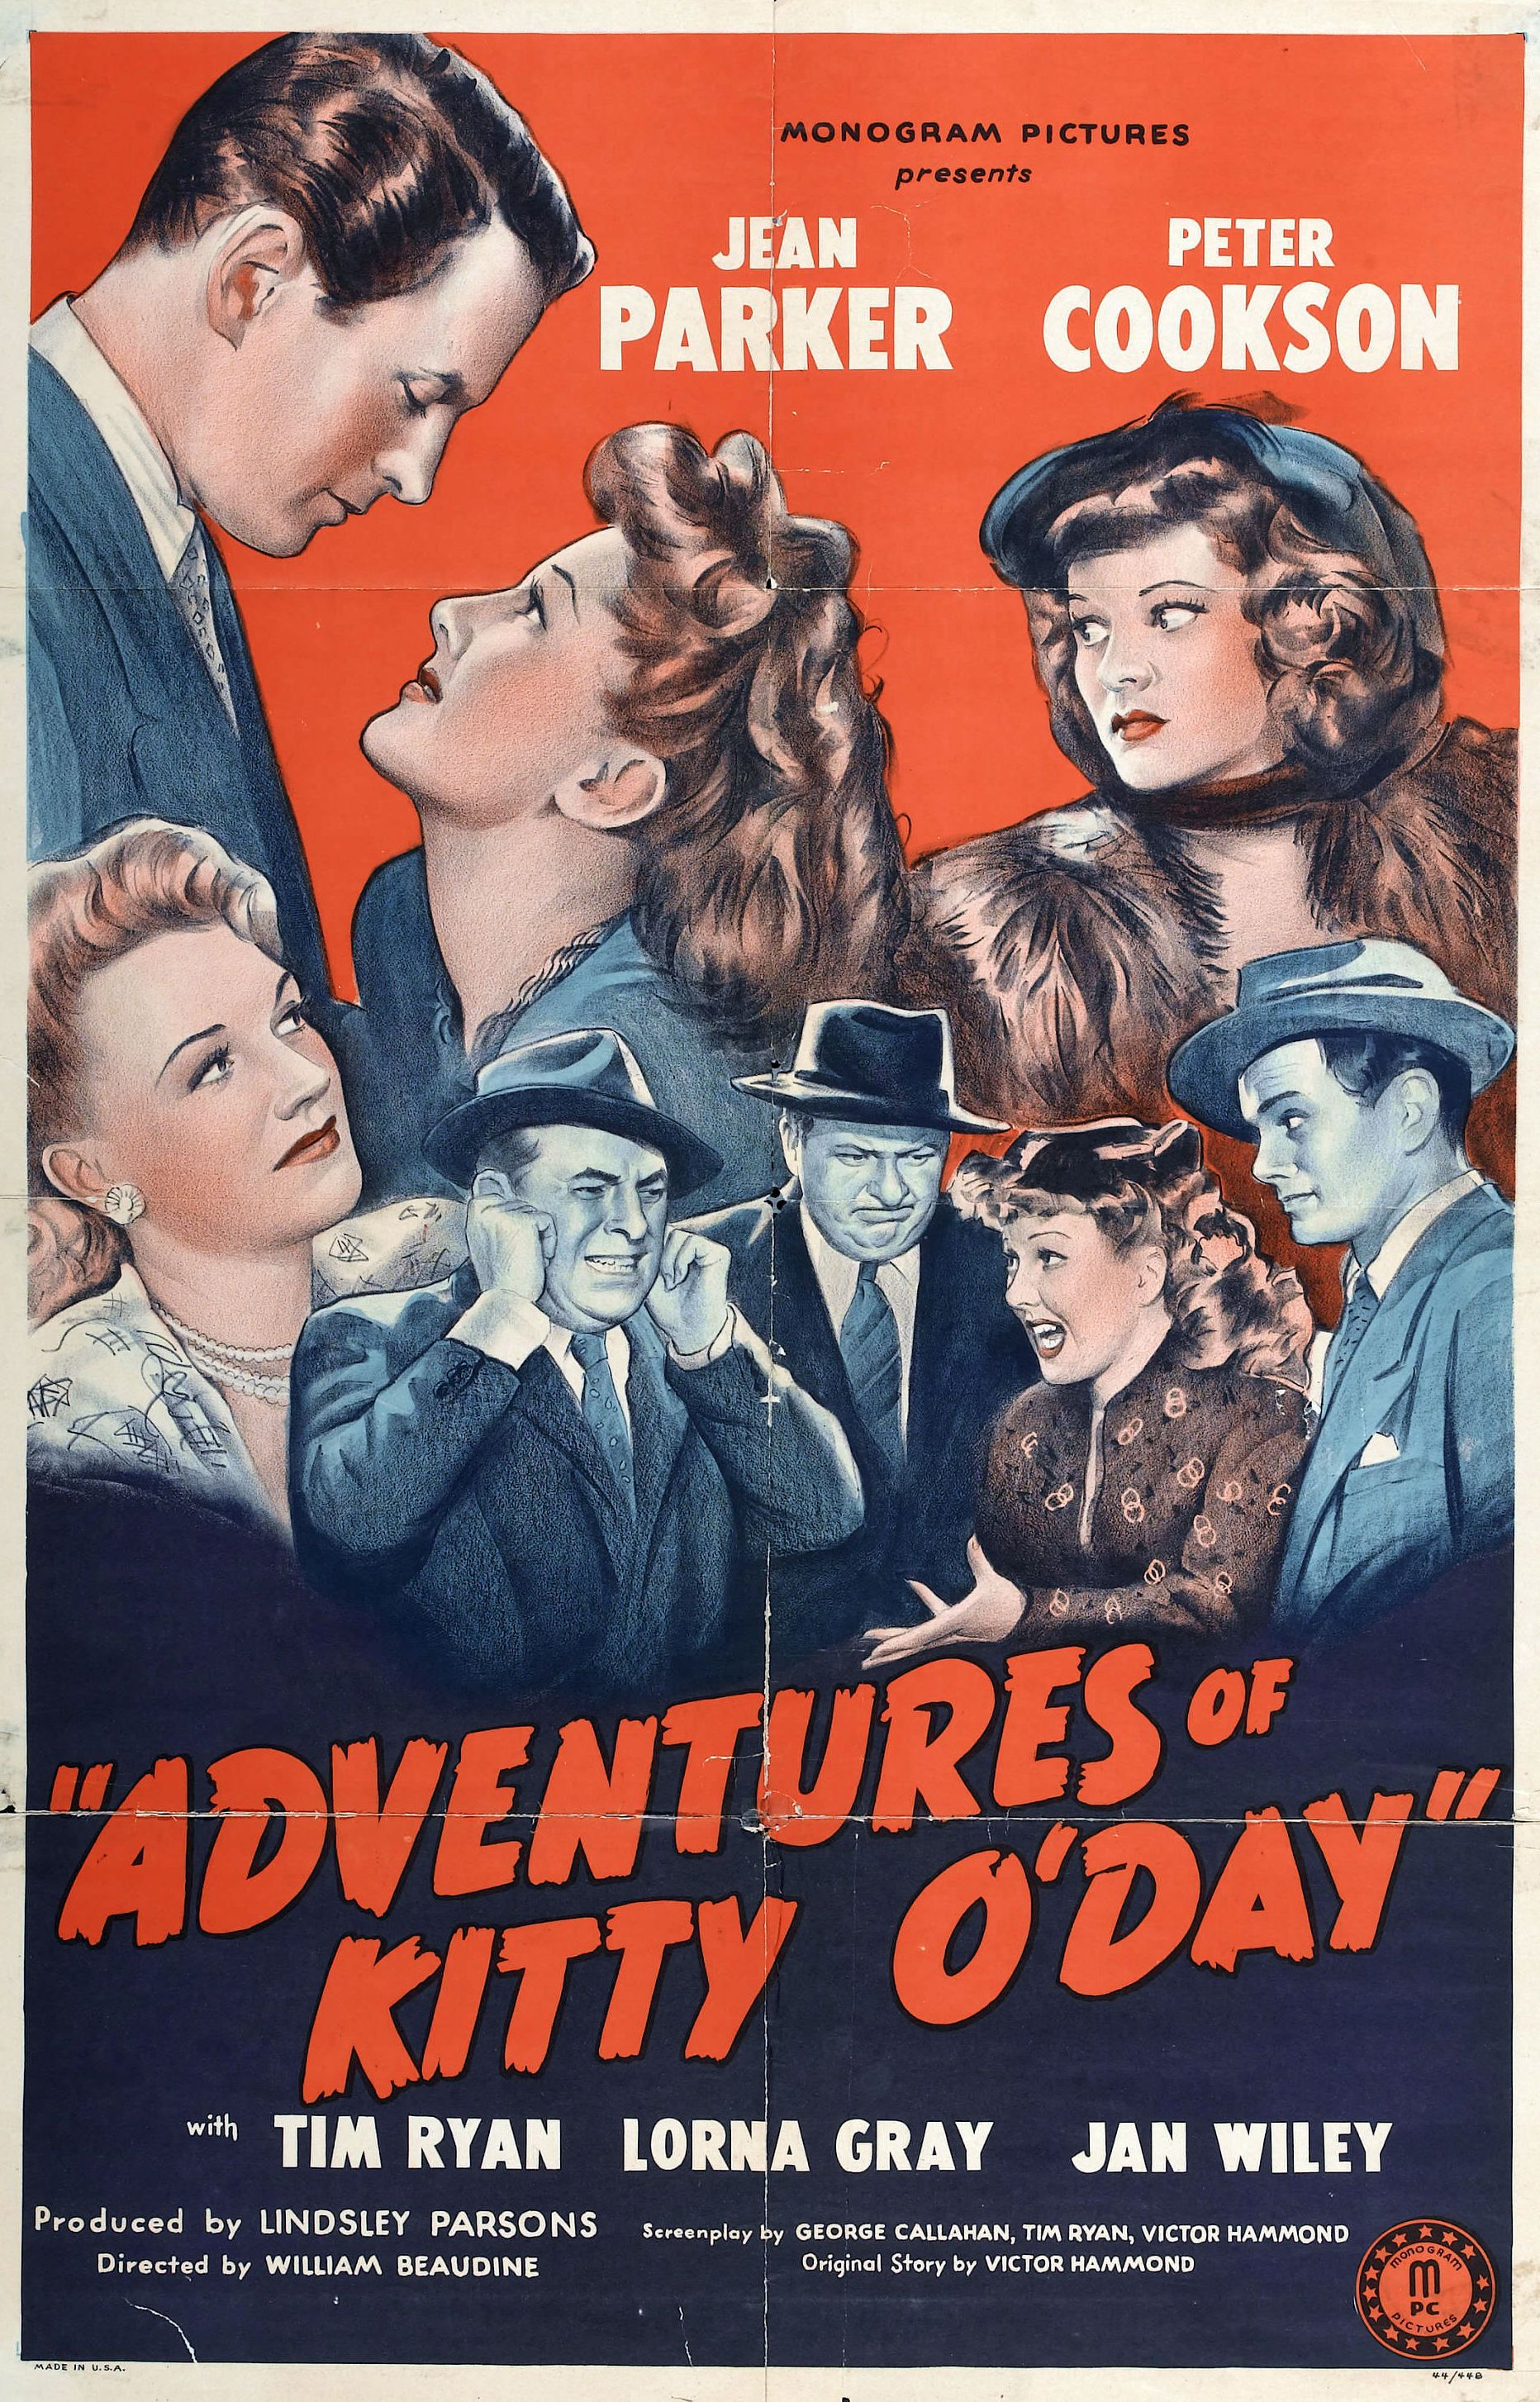 Adventures of Kitty O'Day (1945) Stars Jean Parker, Peter